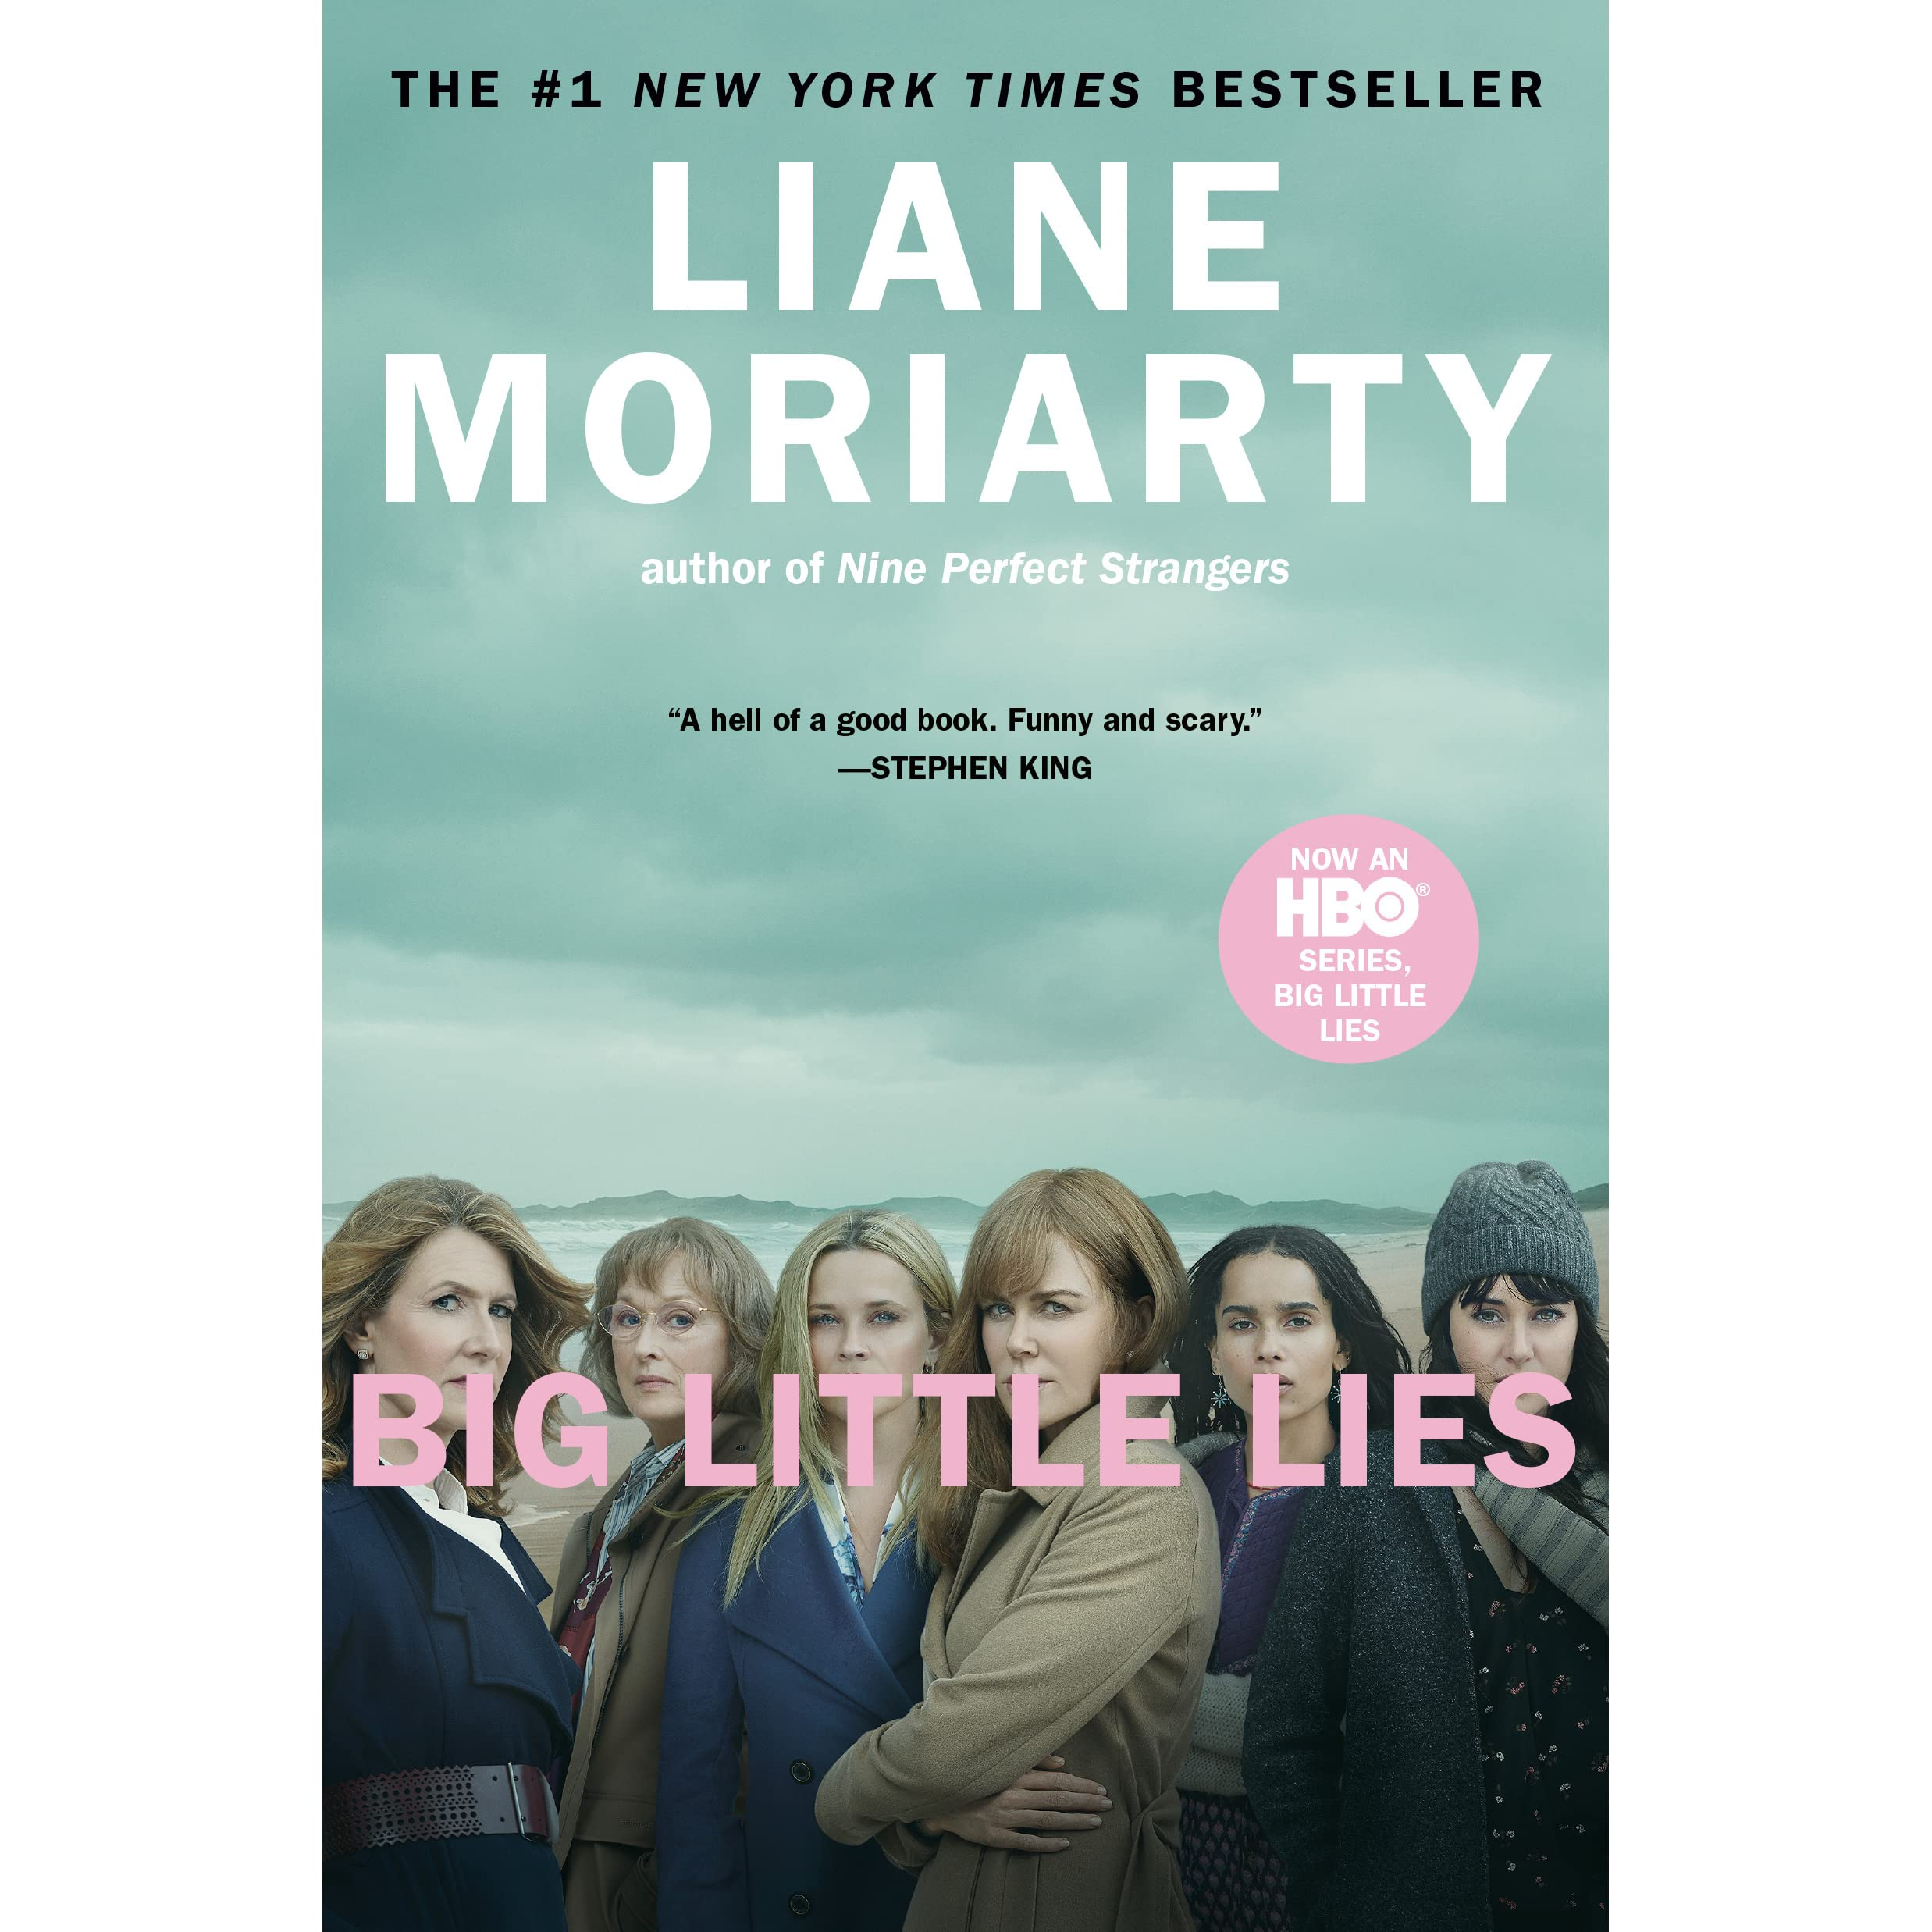 Book Review Parents Have Power To Make >> Big Little Lies By Liane Moriarty